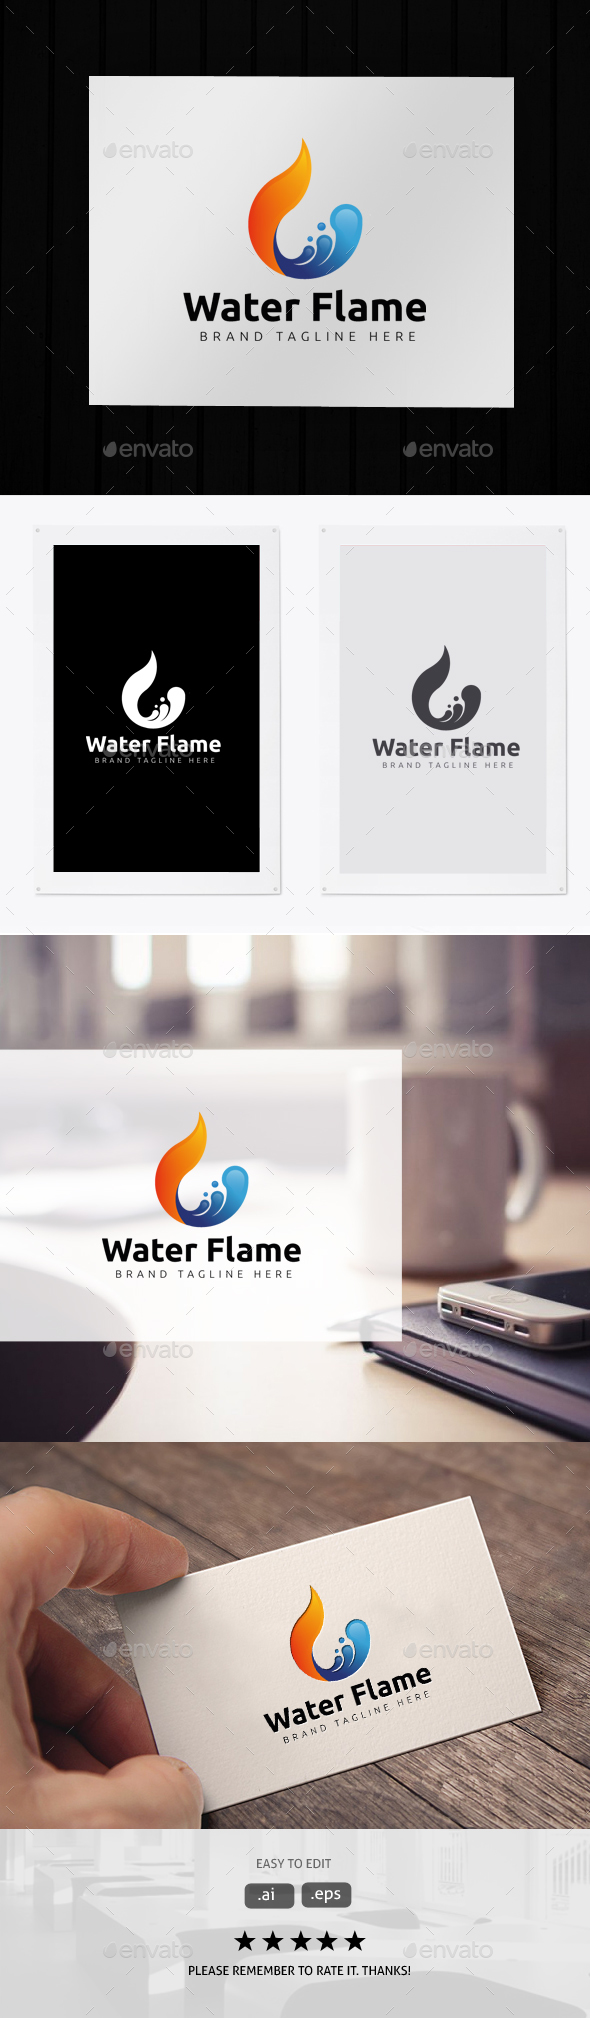 Water Flame